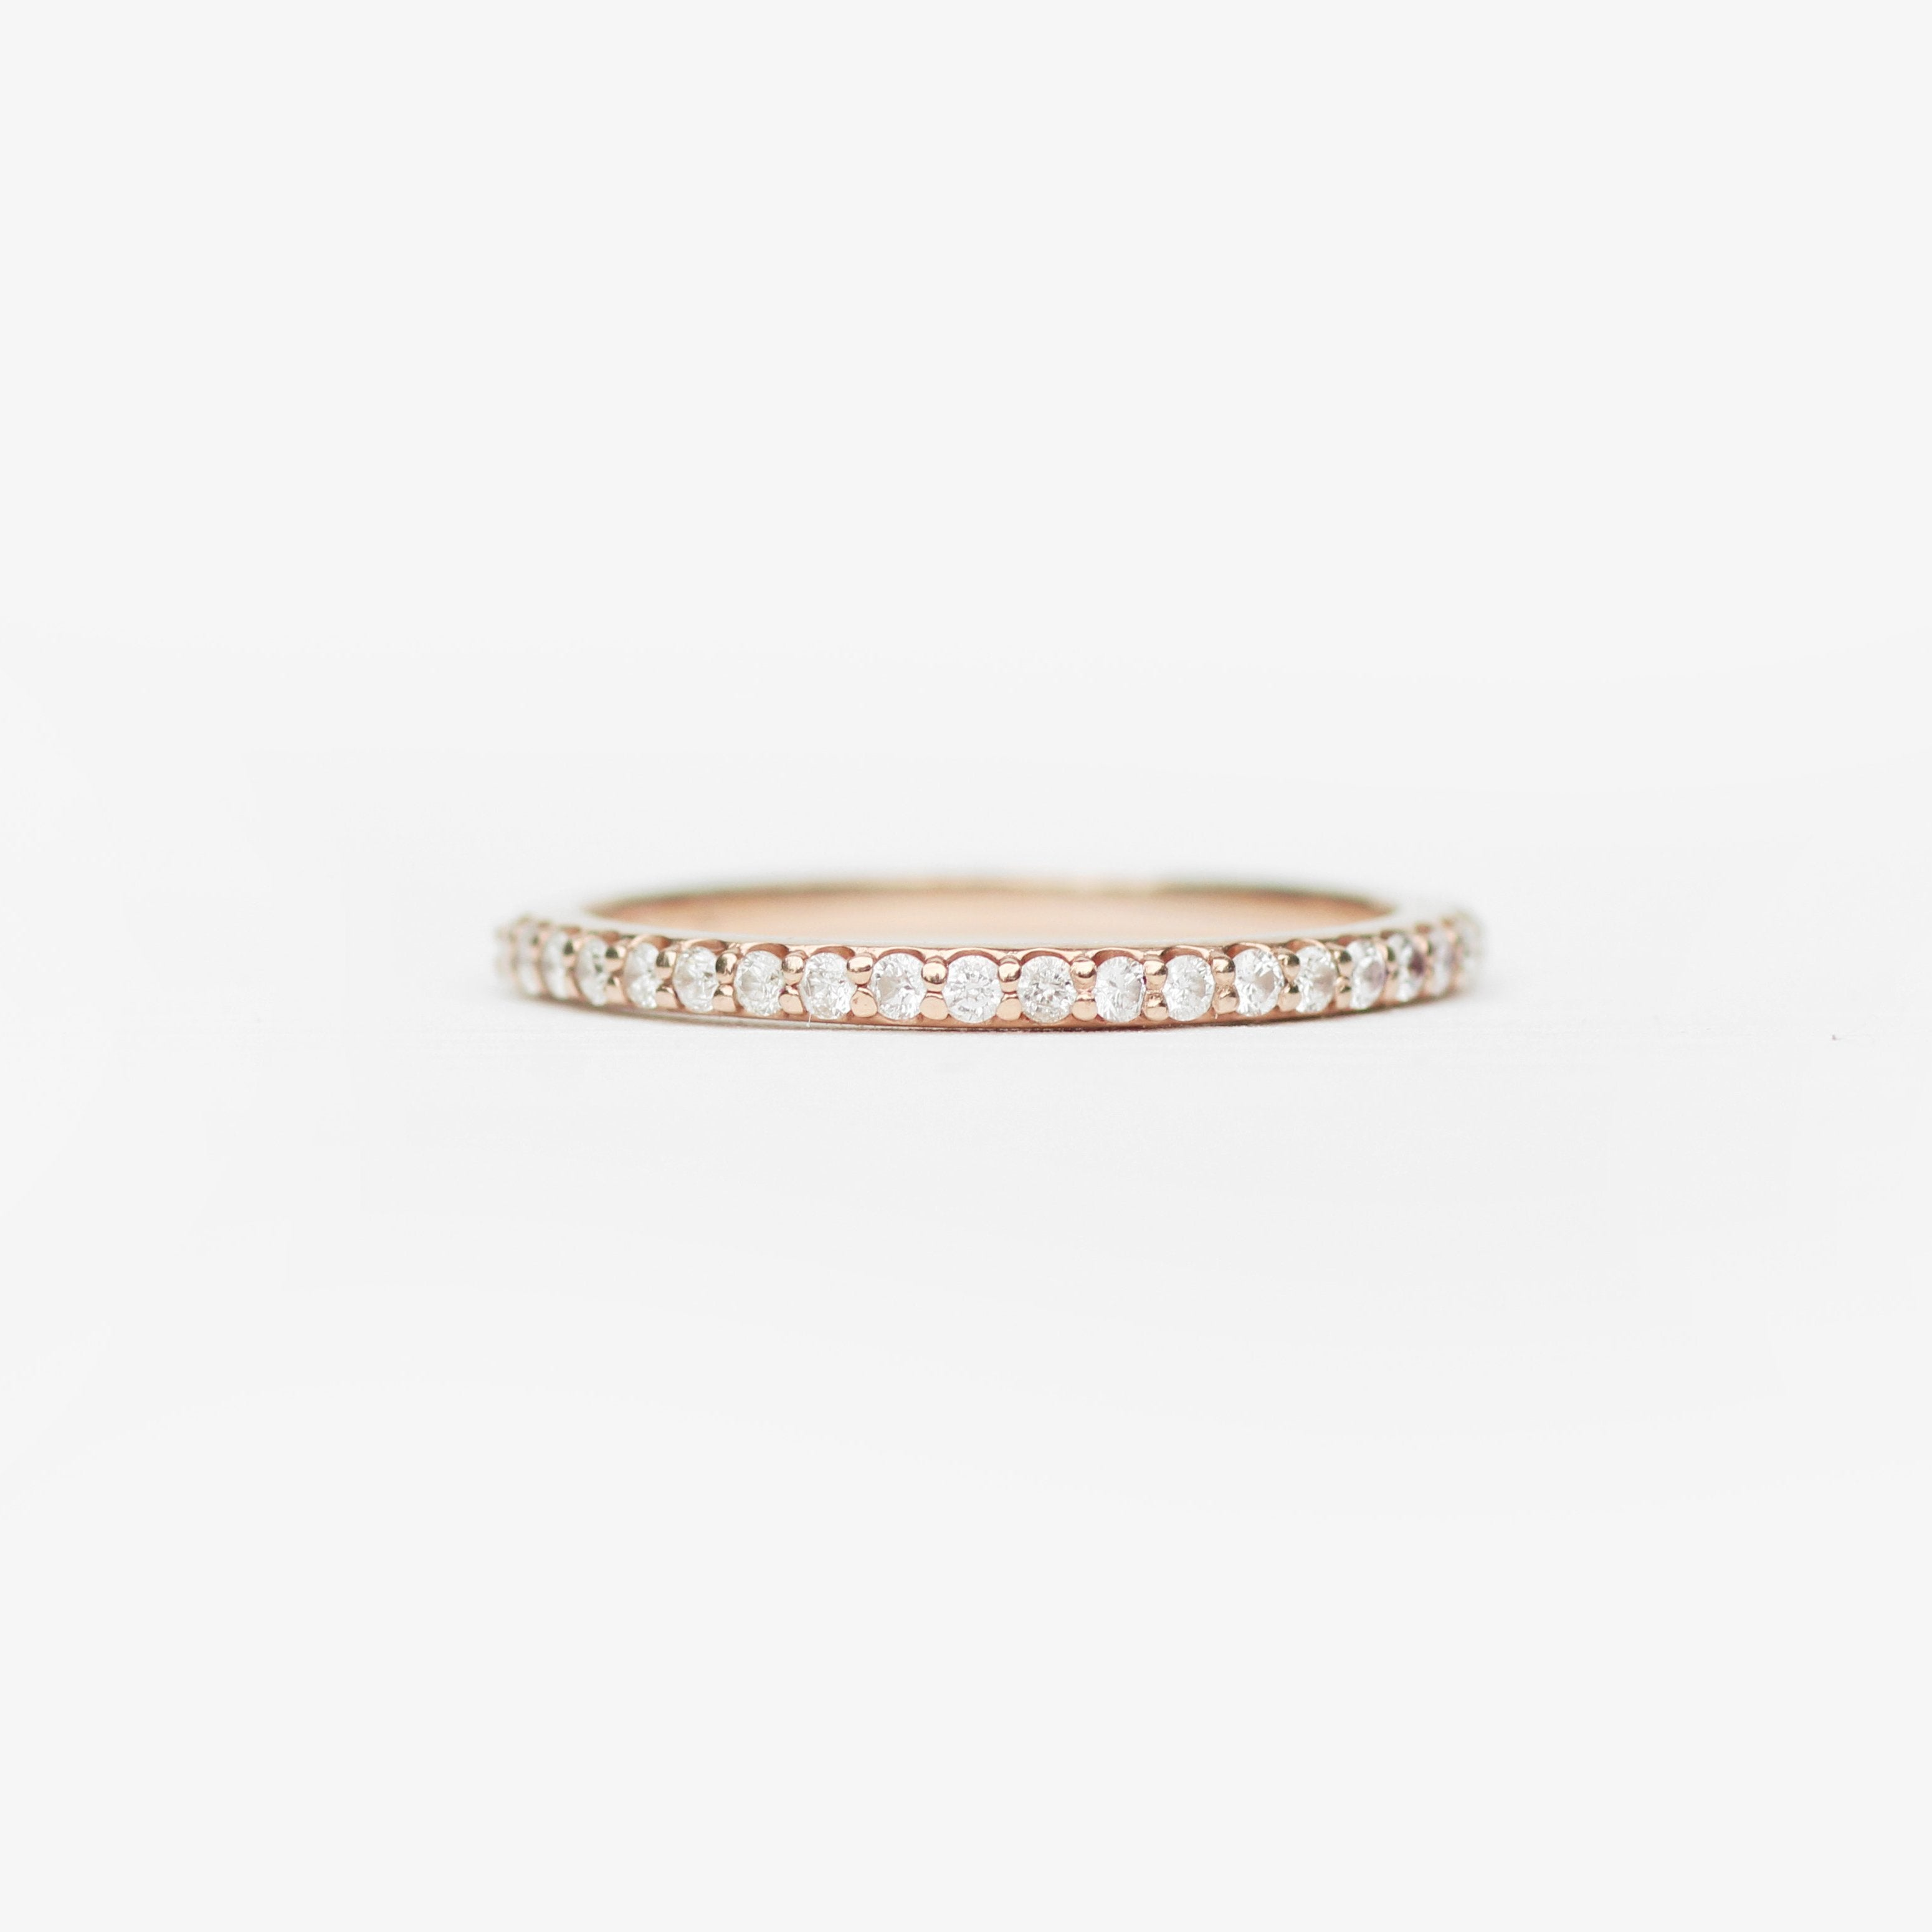 Constance - Pave set, minimal diamond wedding stacking band - Salt & Pepper Celestial Diamond Engagement Rings and Wedding Bands  by Midwinter Co.